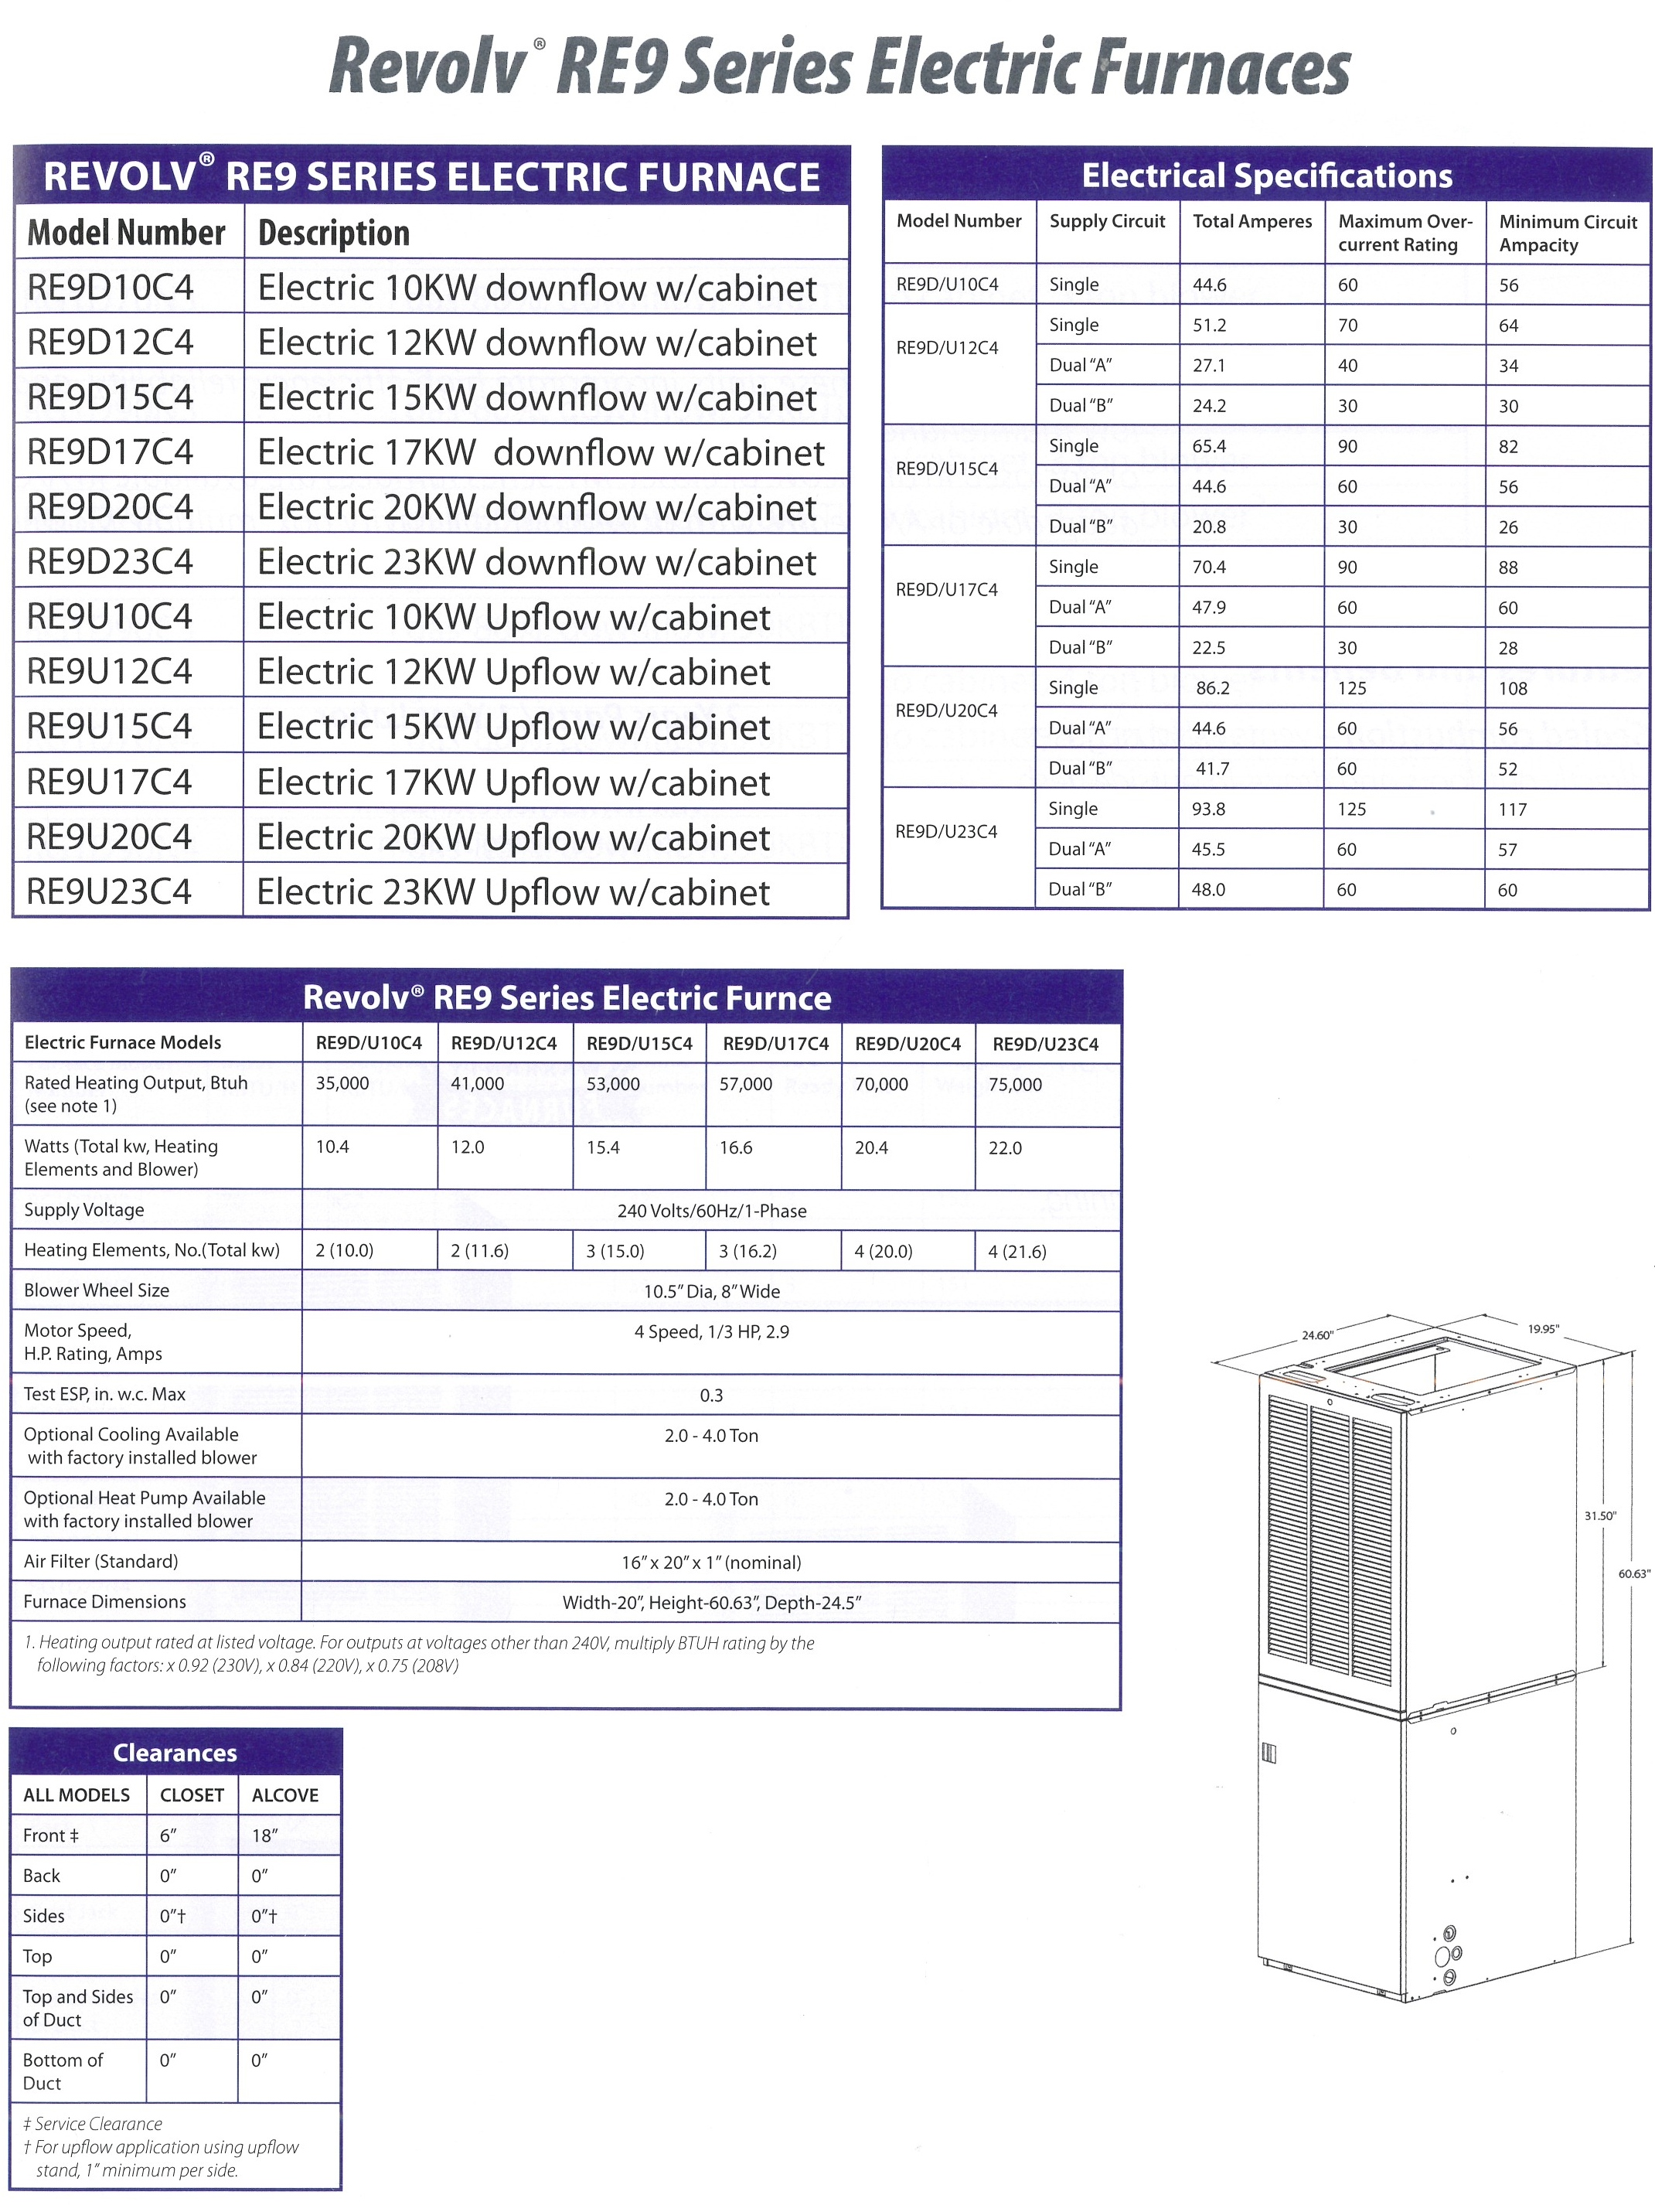 REVOLV RE9 SERIES ELECTRIC FURNACES